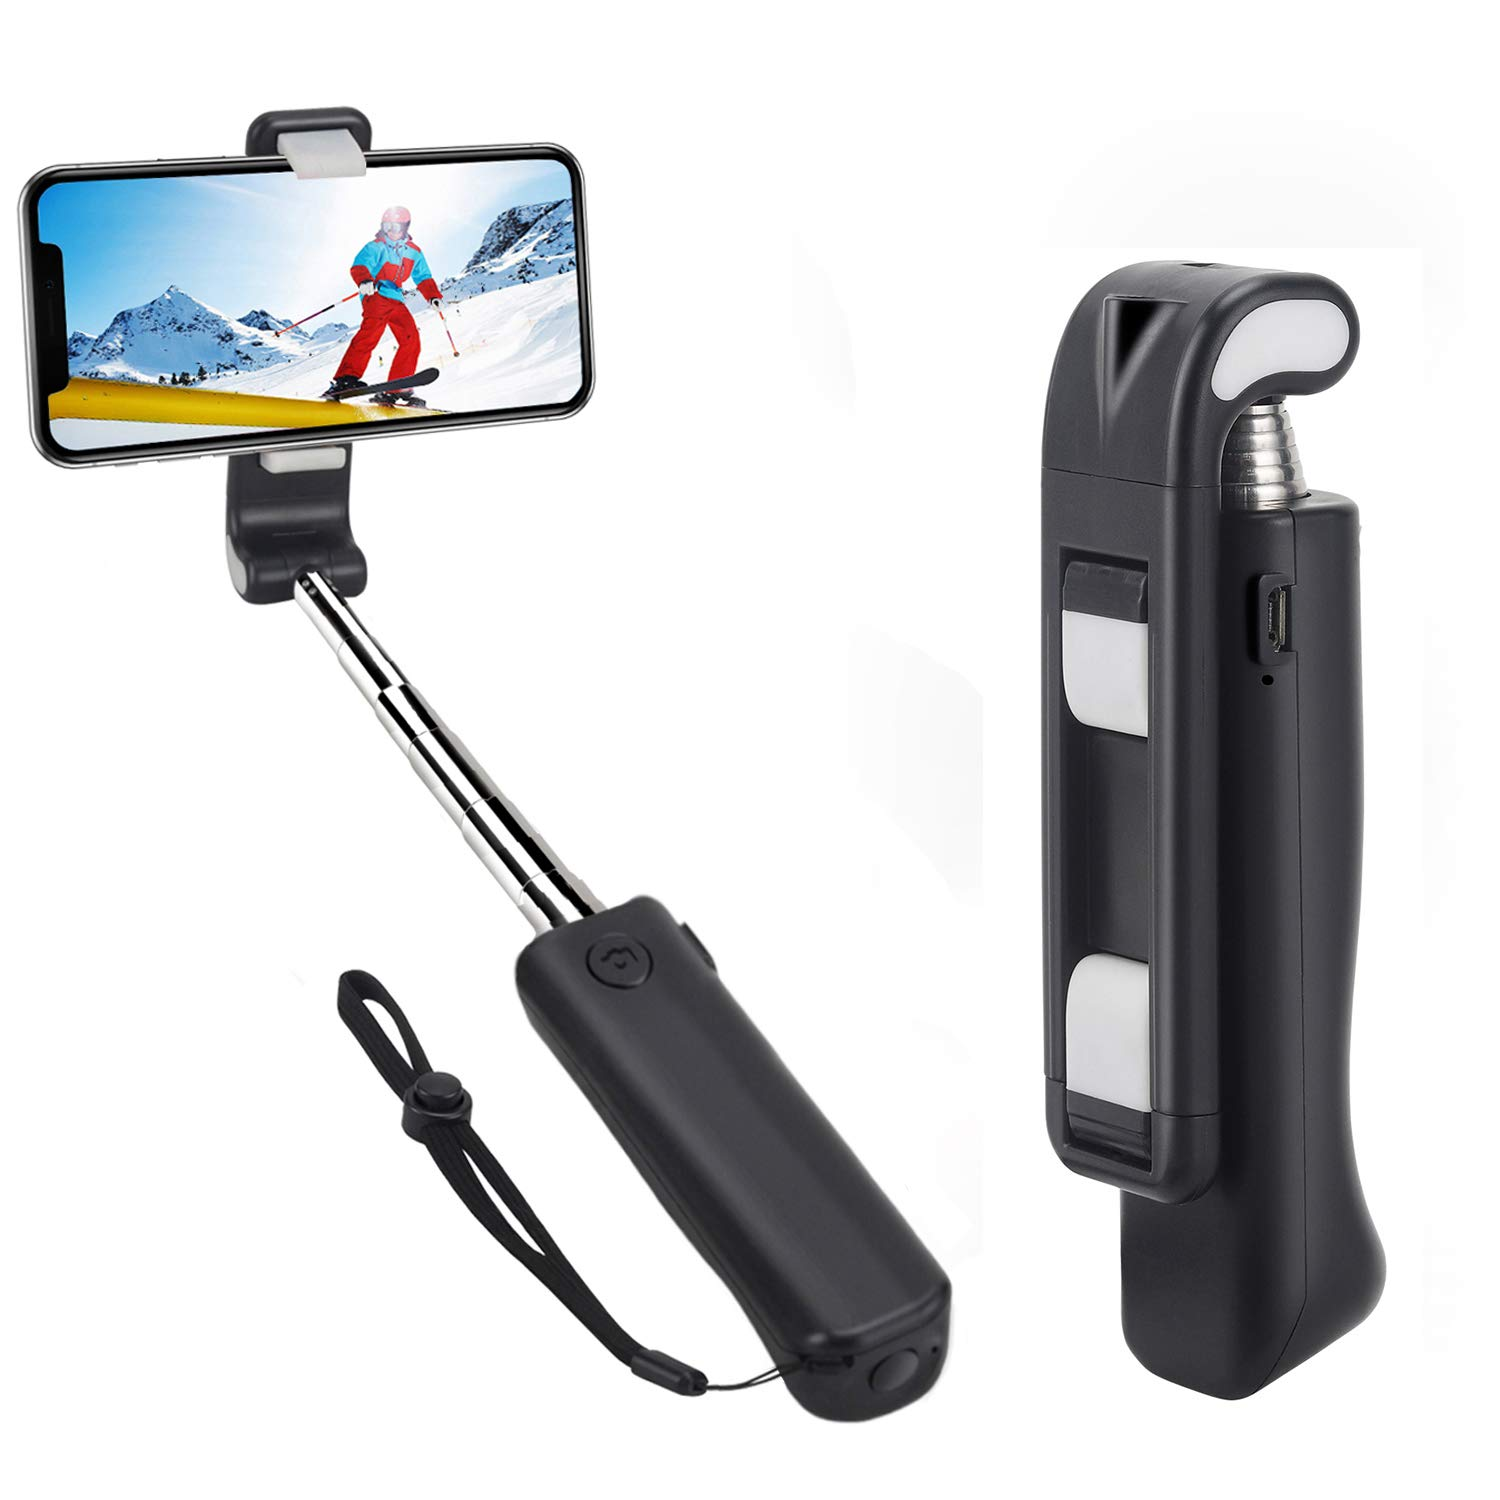 Selfie Stick,Jteman 5-in-1 Mini Bluetooth Selfie Stick Anti-Shake Hand Grip Cell Phone Holder Selfie Monopod Stick for iPhone Xs max/XR/X/8/7/6s,Samsung Galaxy S9/8/Note,and All Smartphone(Black) by jteman